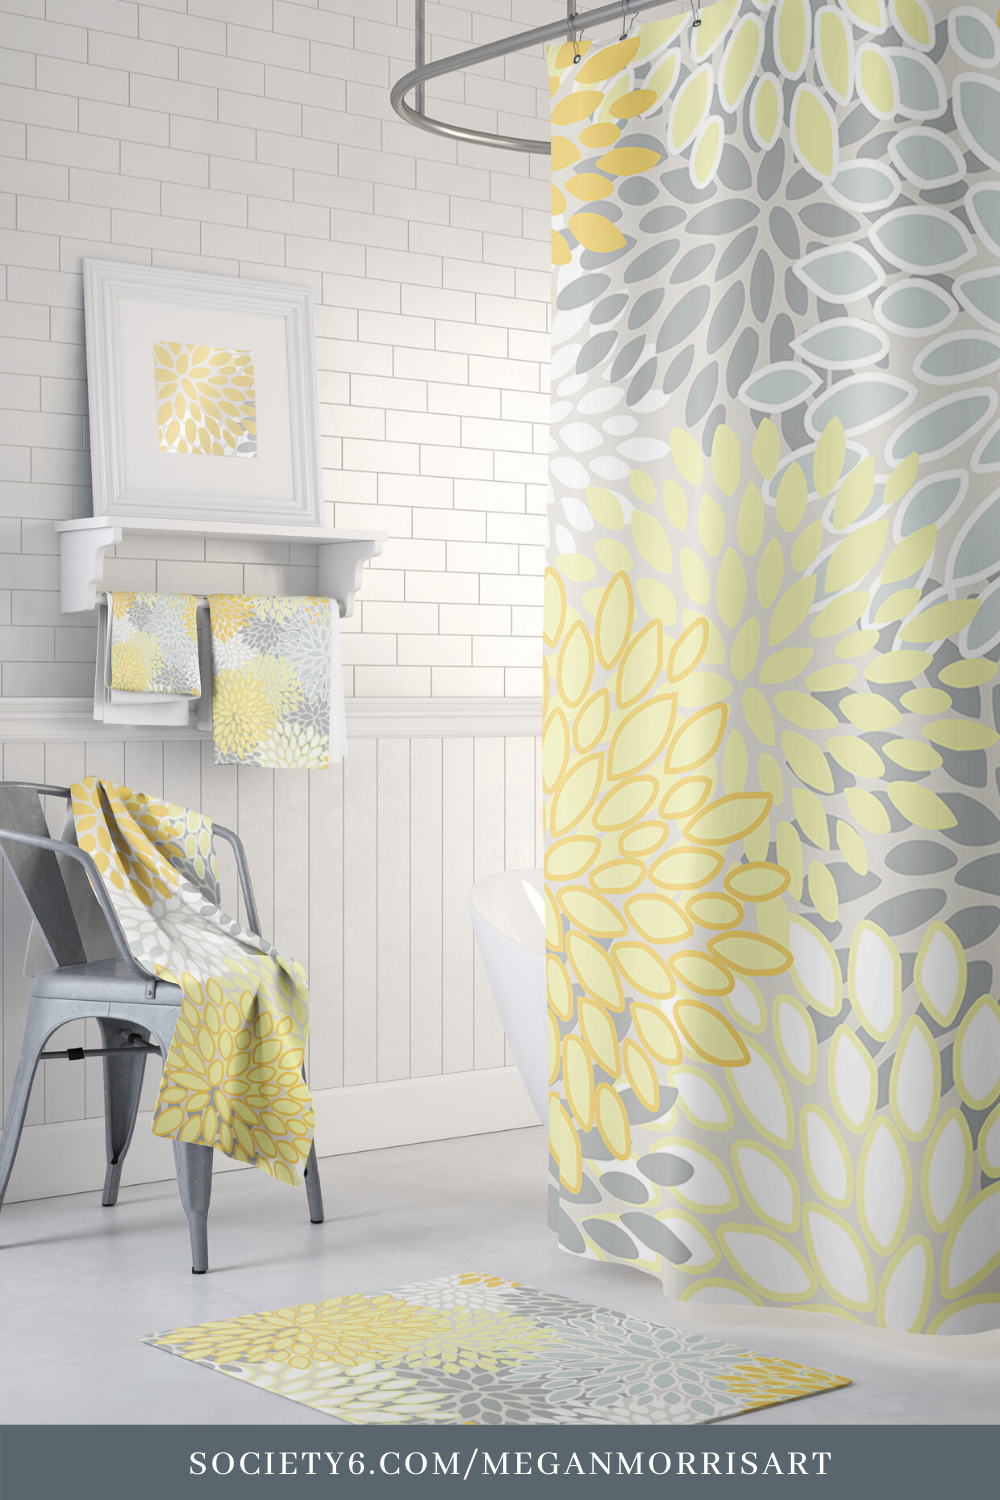 Bathroom Sets Shower Curtains Rugs And Towels Yellow And Gray